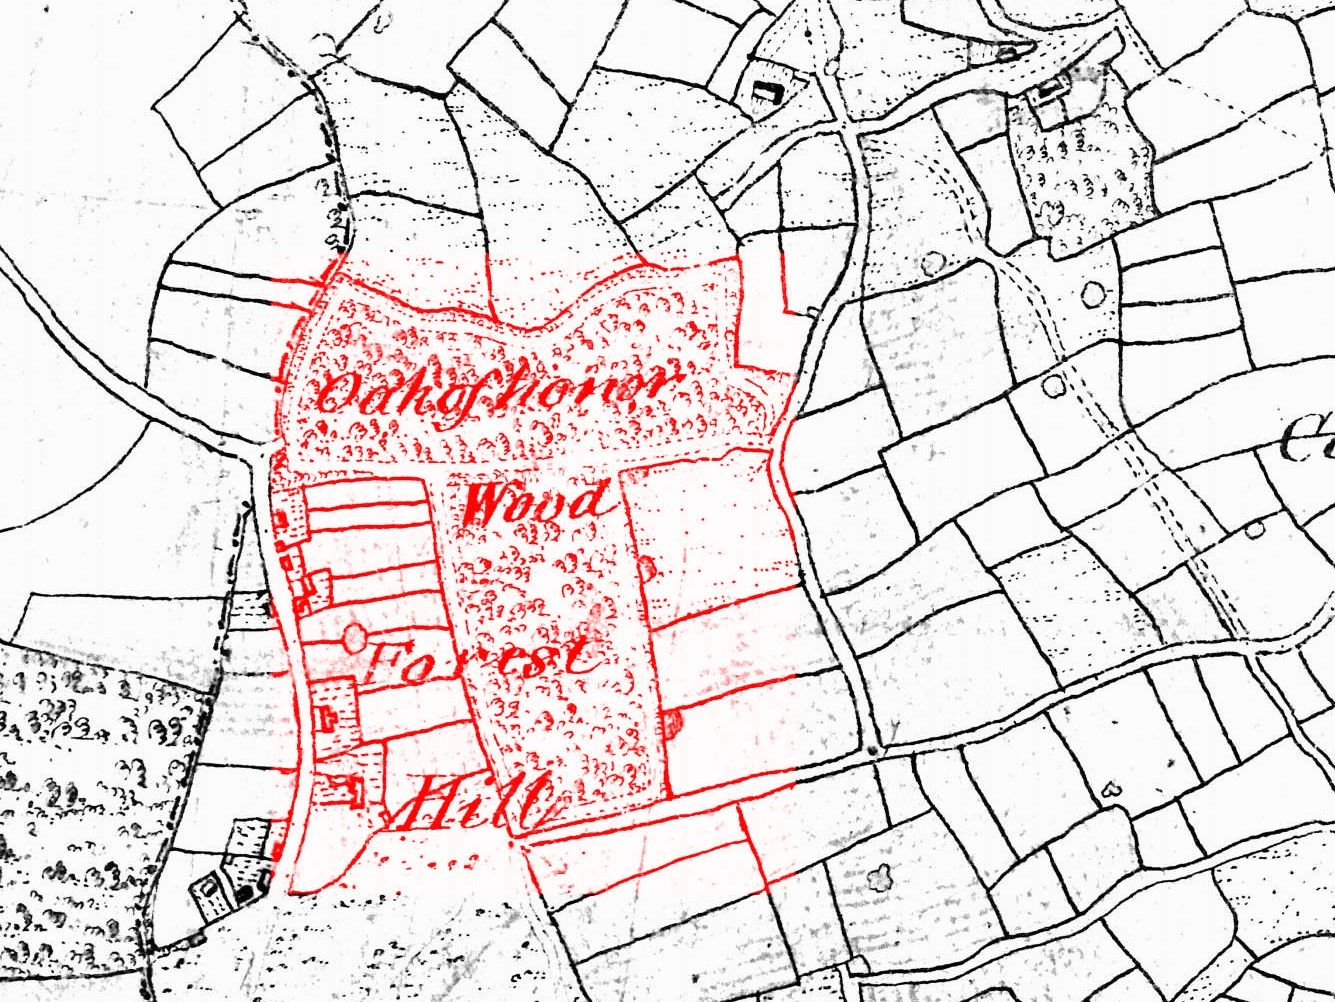 Close-up of map showing Oak of Honor Wood and a few houses on the site of the Centre, labelled Forest Hill.